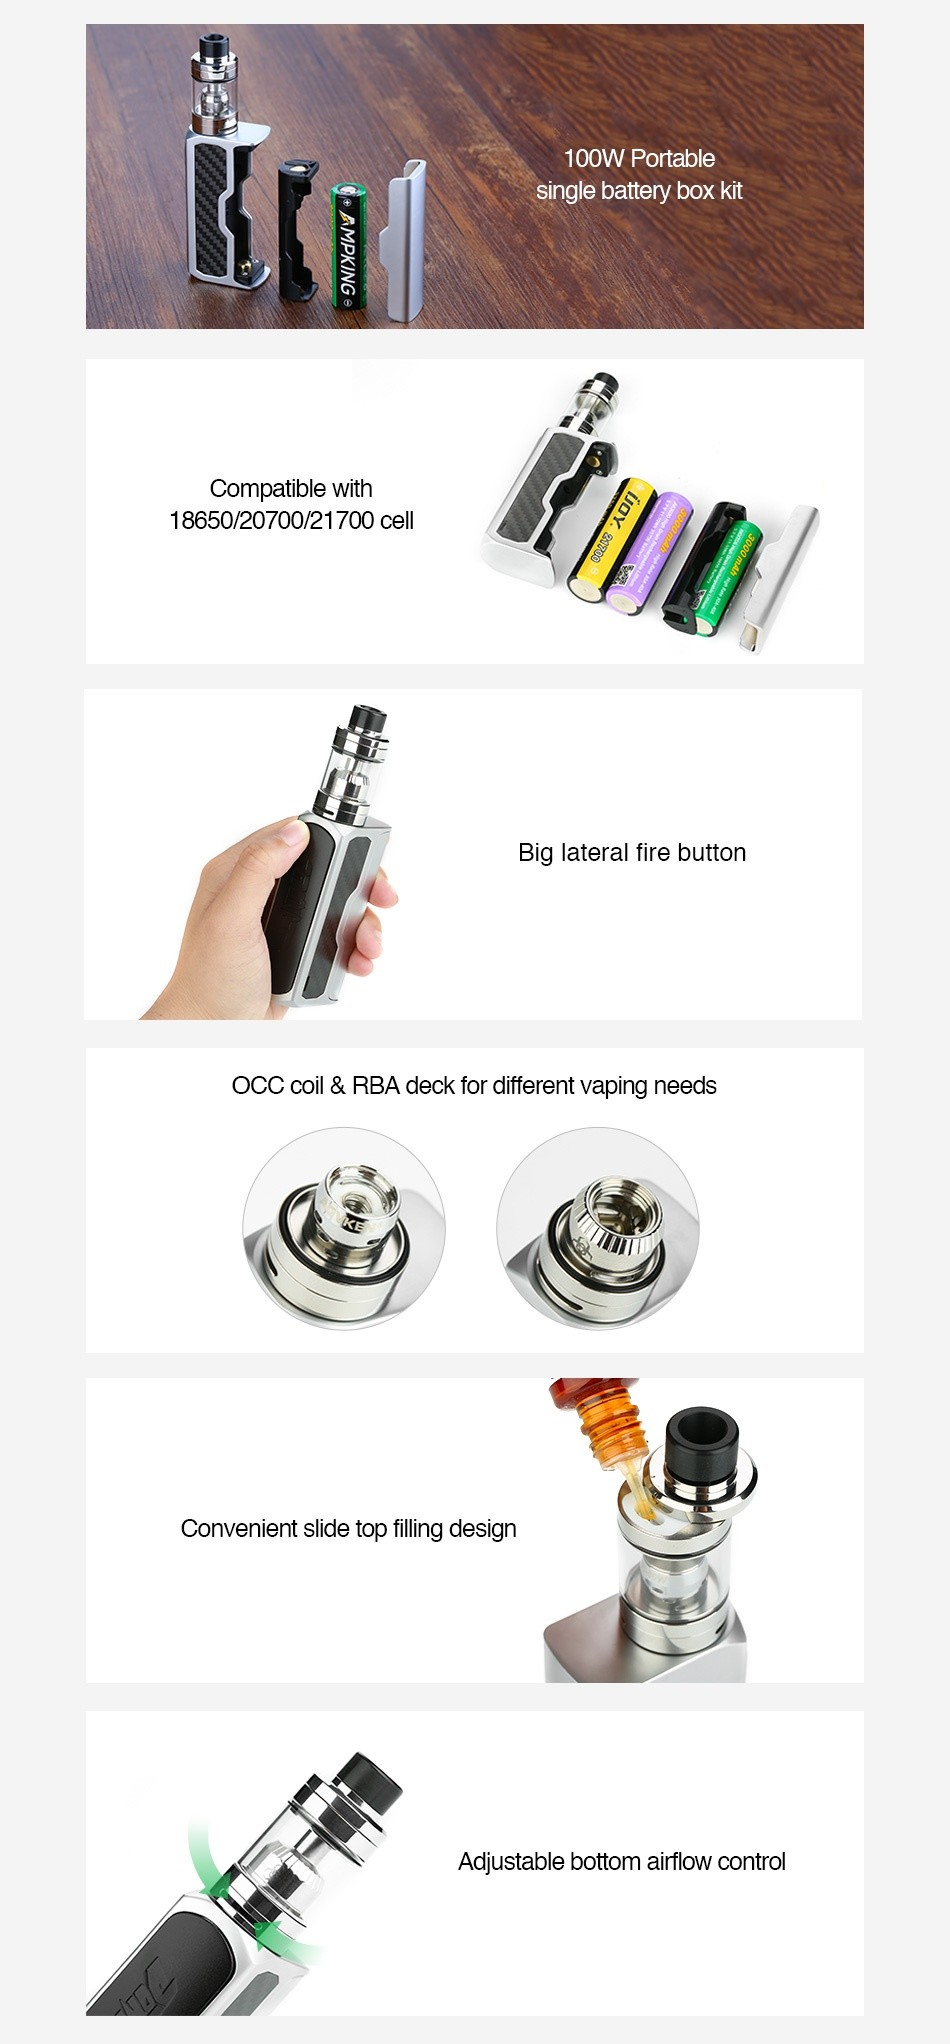 Advken Dominator 100W TC Kit RBA Deck Version 100W Portable single battery box kit Compatible with 1865020700 21700cel Big lateral fire button OCC coil rba deck for different vaping needs Convenient slide top filling desig Adiustable bottom airflow contro